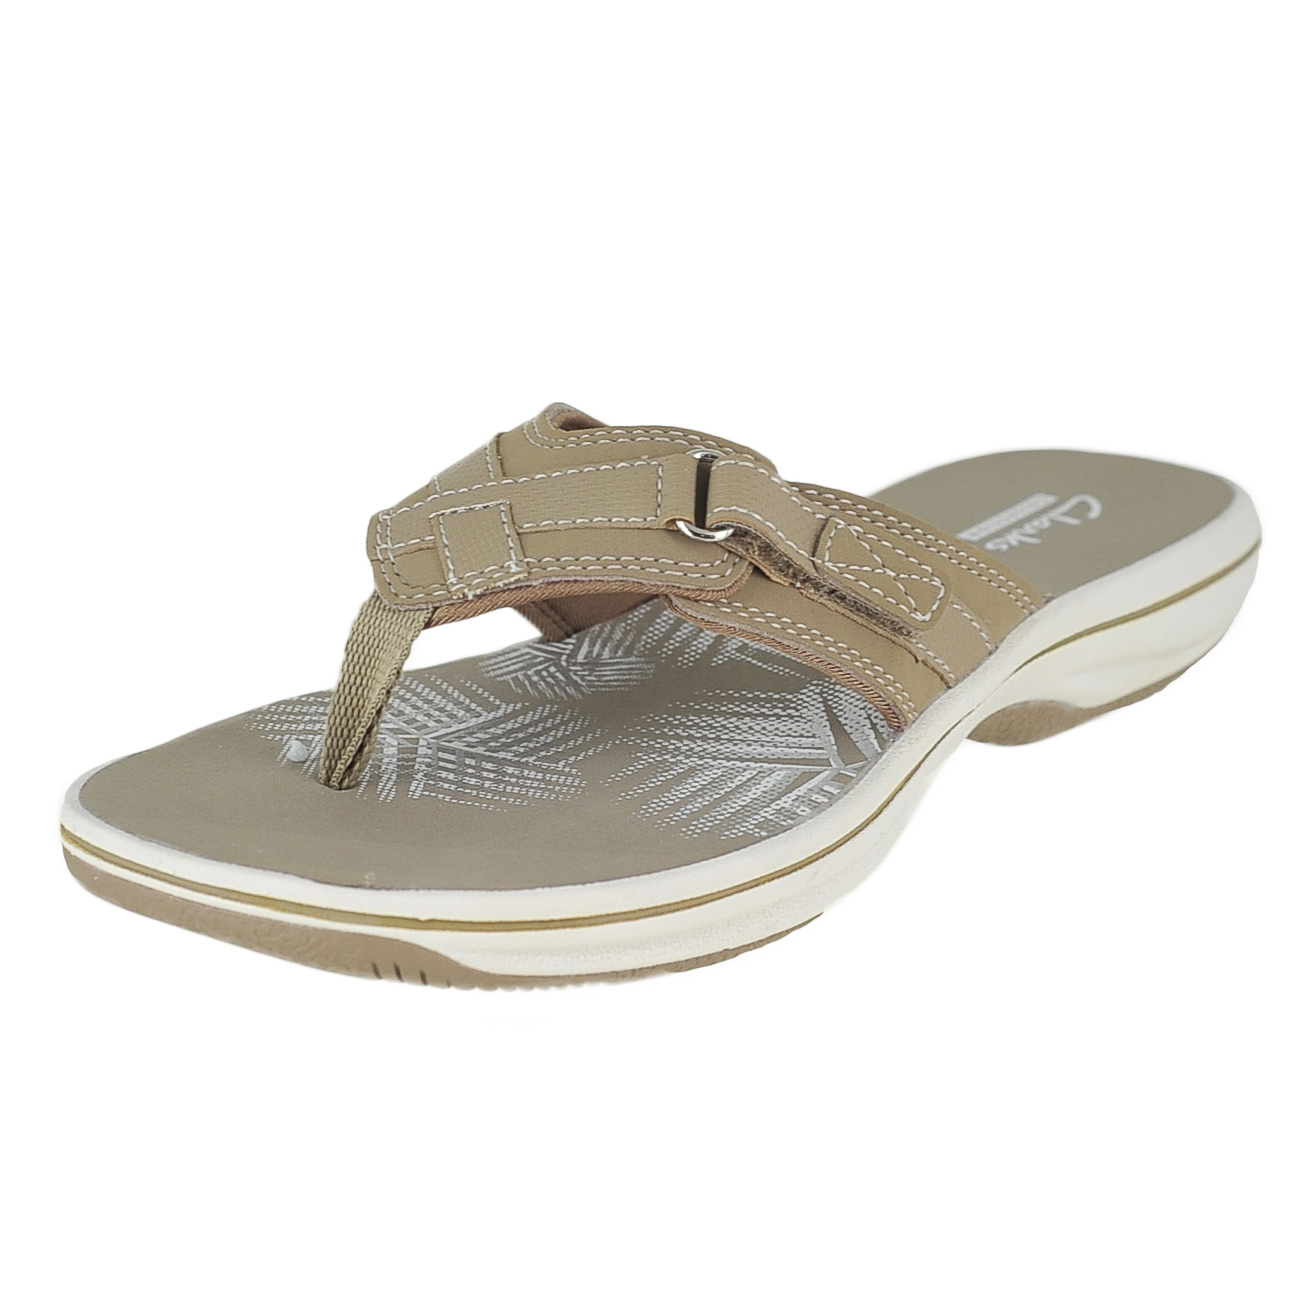 544c7d475123 Clarks Breeze Sea Taupe Womens Flip-Flop Size 8M 889305831799